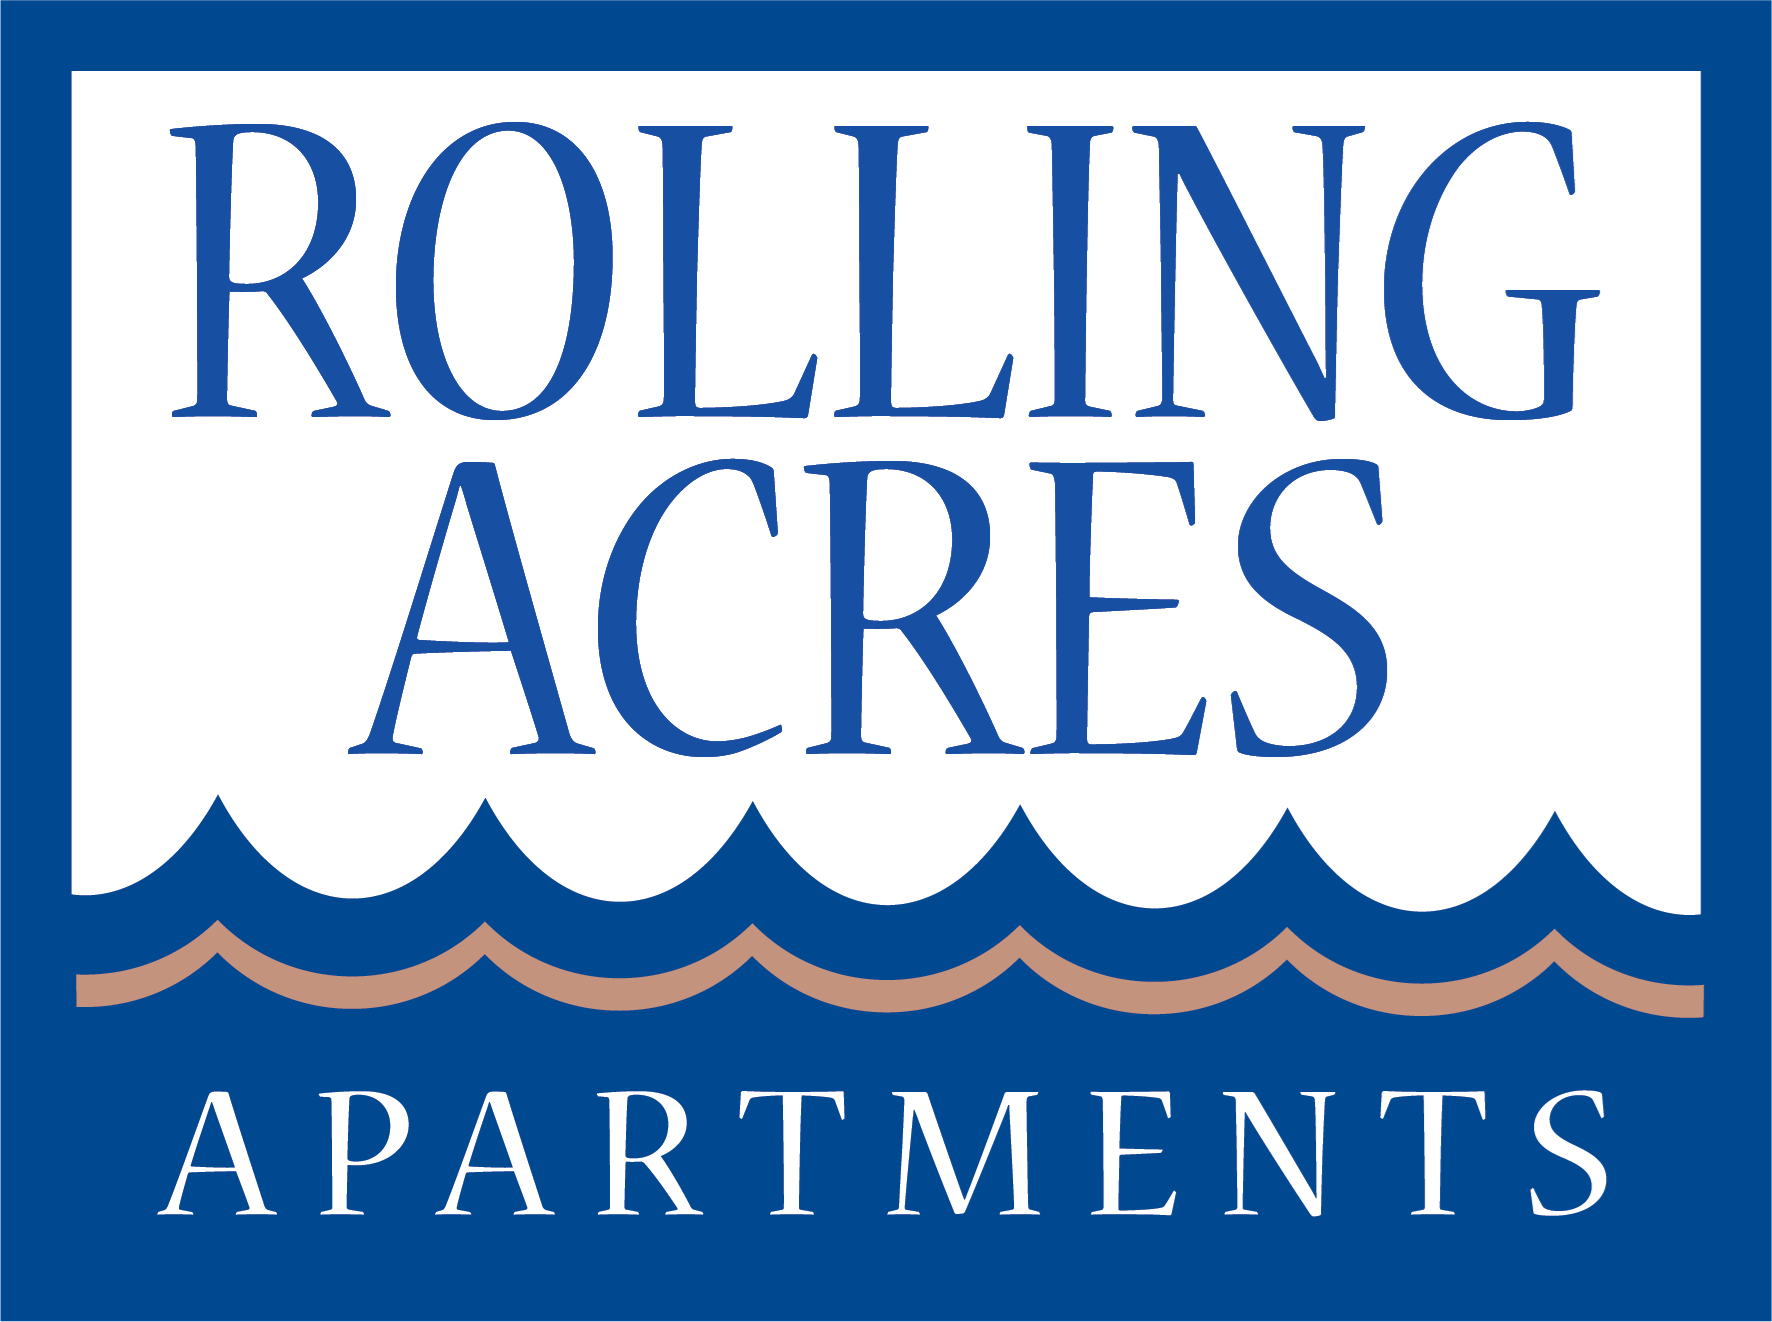 Rolling Acres Apartments for rent in Tampa, FL. Make this community your new home or visit other Concord Rents communities at ConcordRents.com. Logo